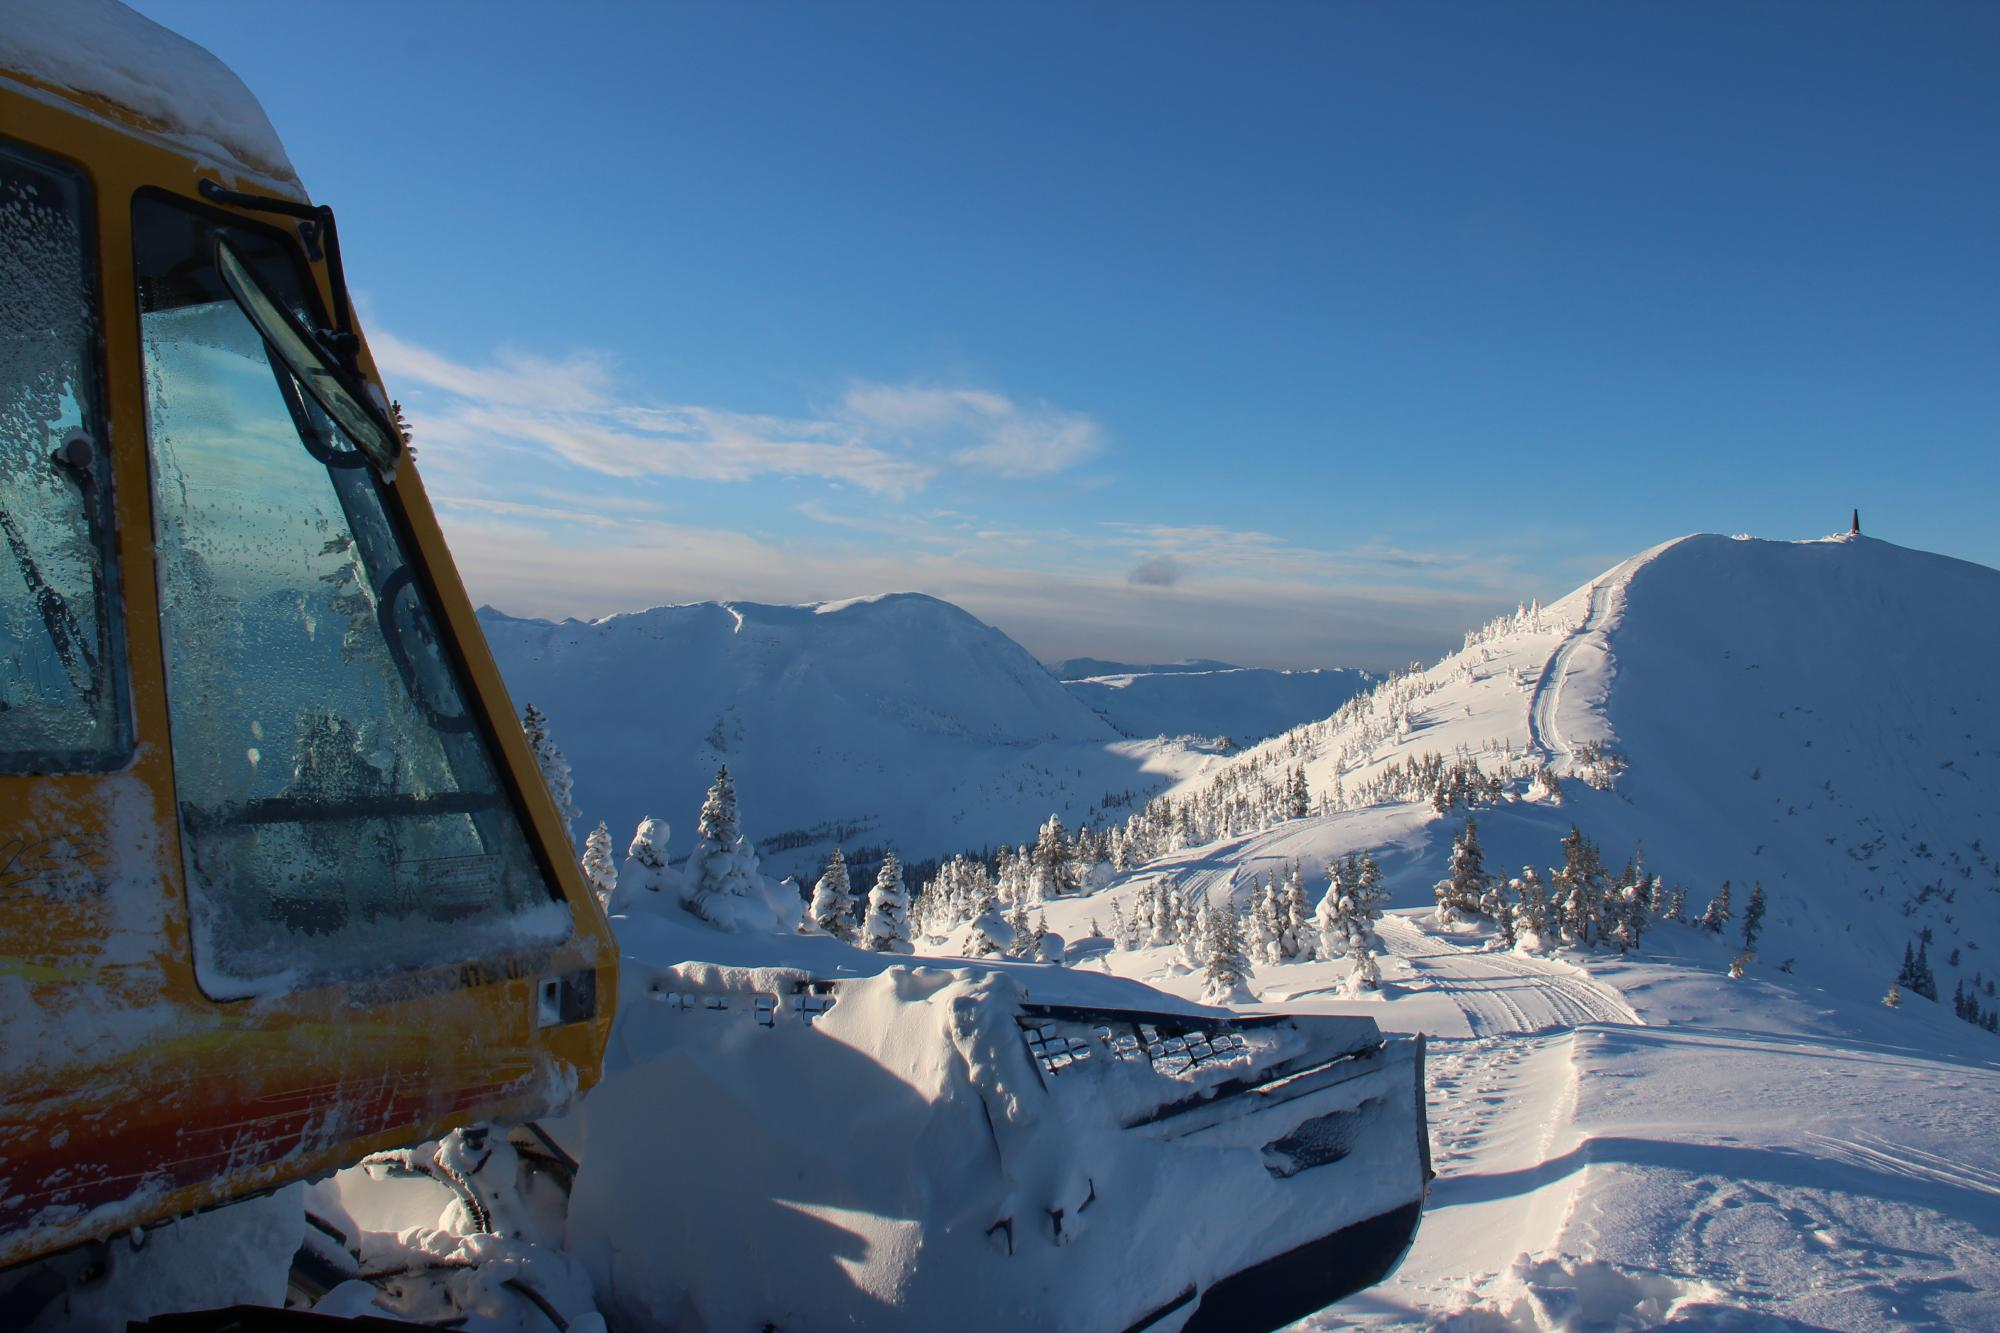 Skeena cat skiing